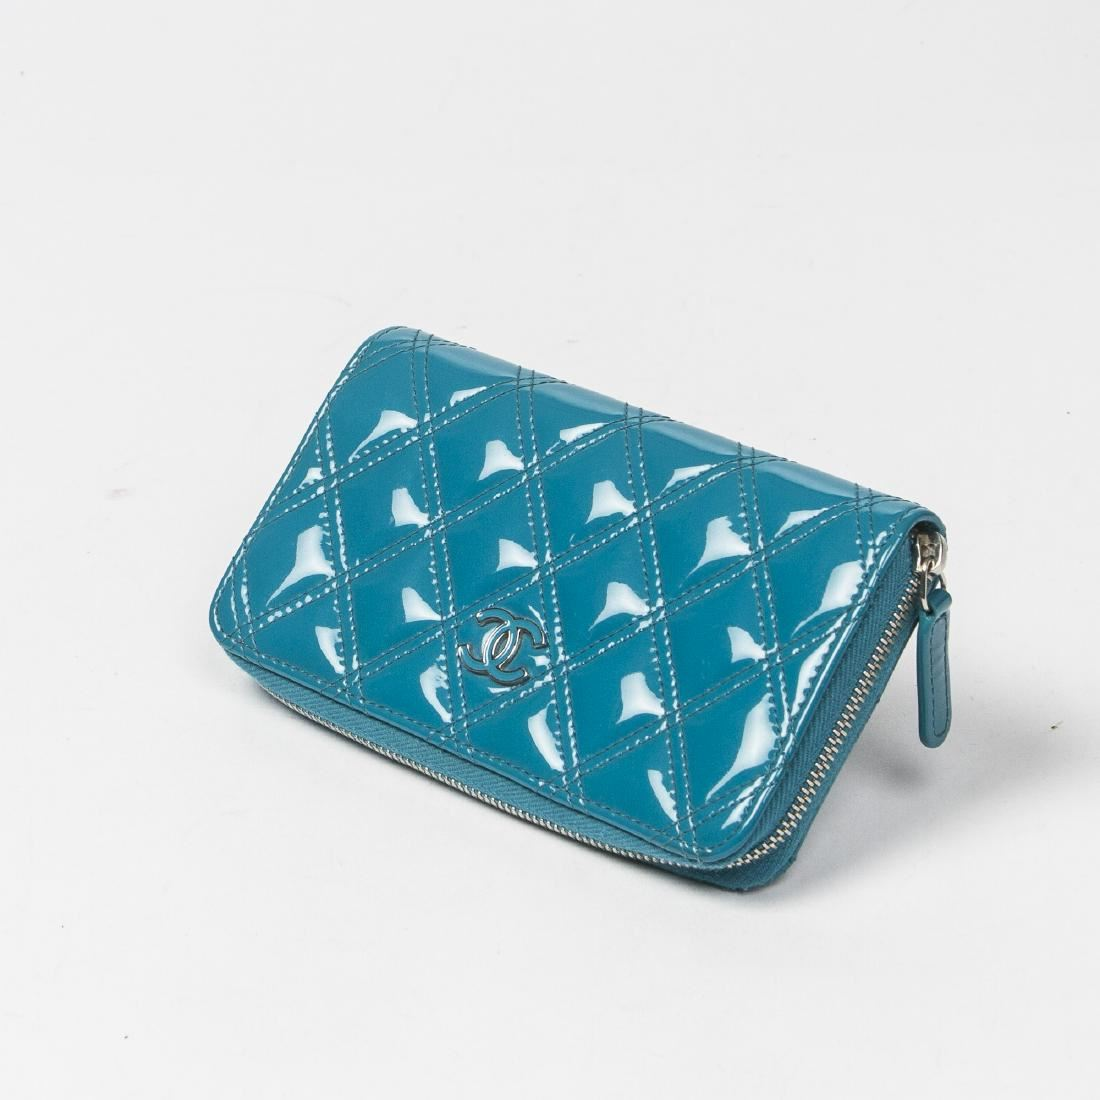 eb309ab1bf9728 Image 1 : CHANEL Zip Wallet in Neon Blue Patent Quilted Leather ...